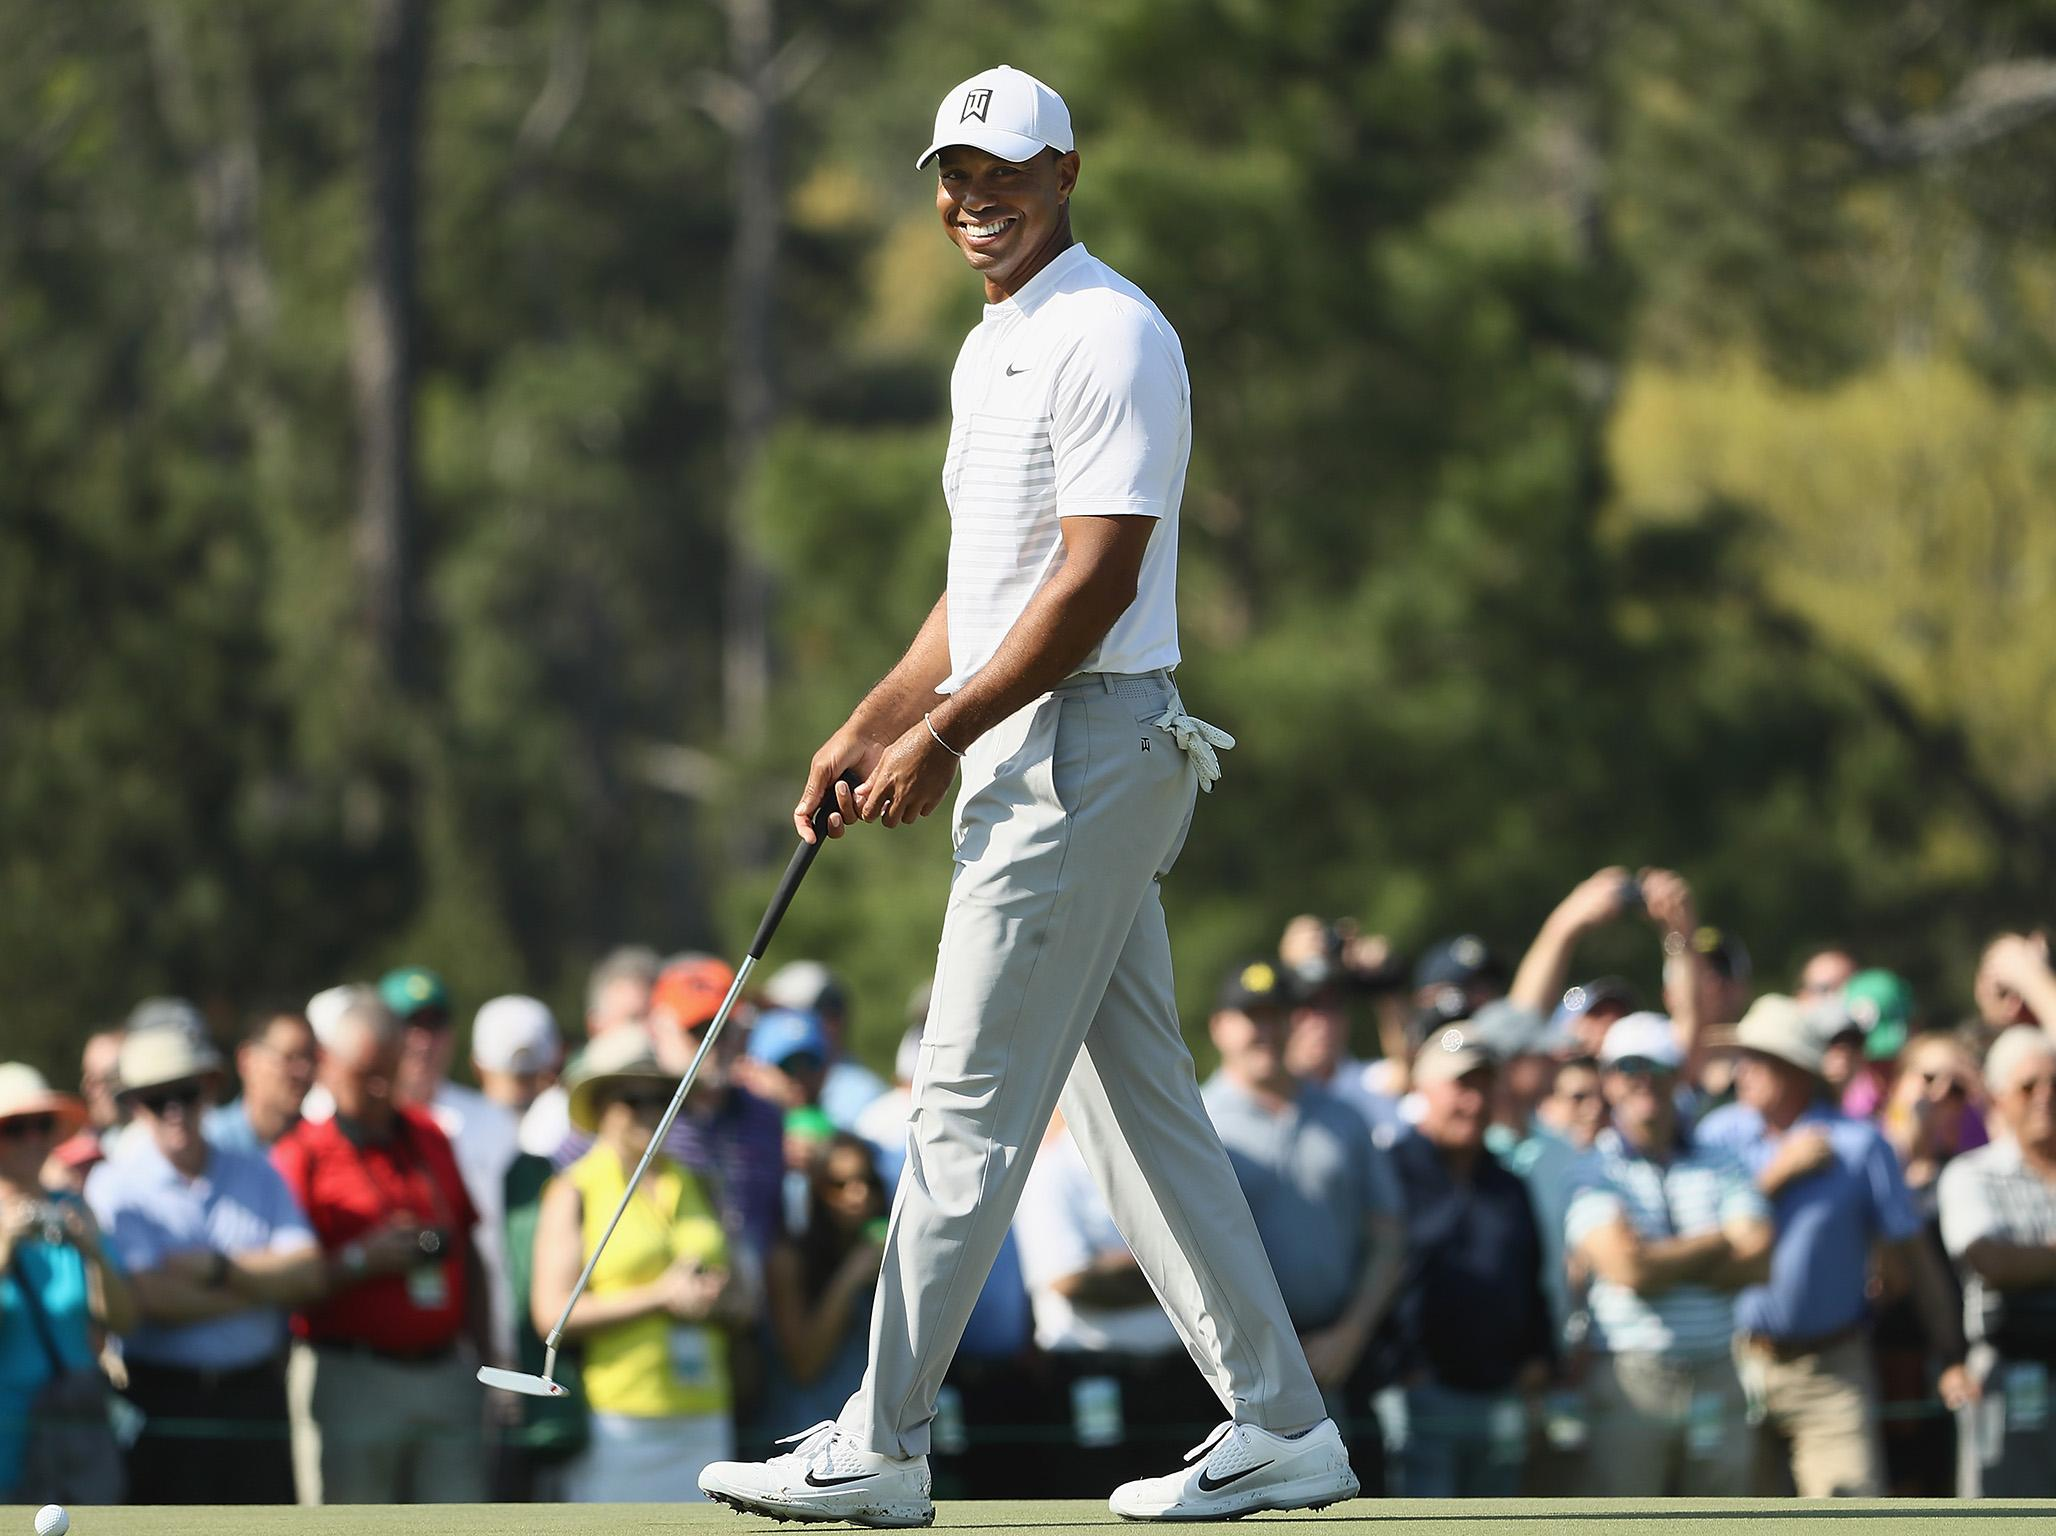 Masters 2018: Tommy Fleetwood paired with Tiger Woods as tee times for opening two rounds revealed | The Independentindependent_brand_ident_LOGOUntitled